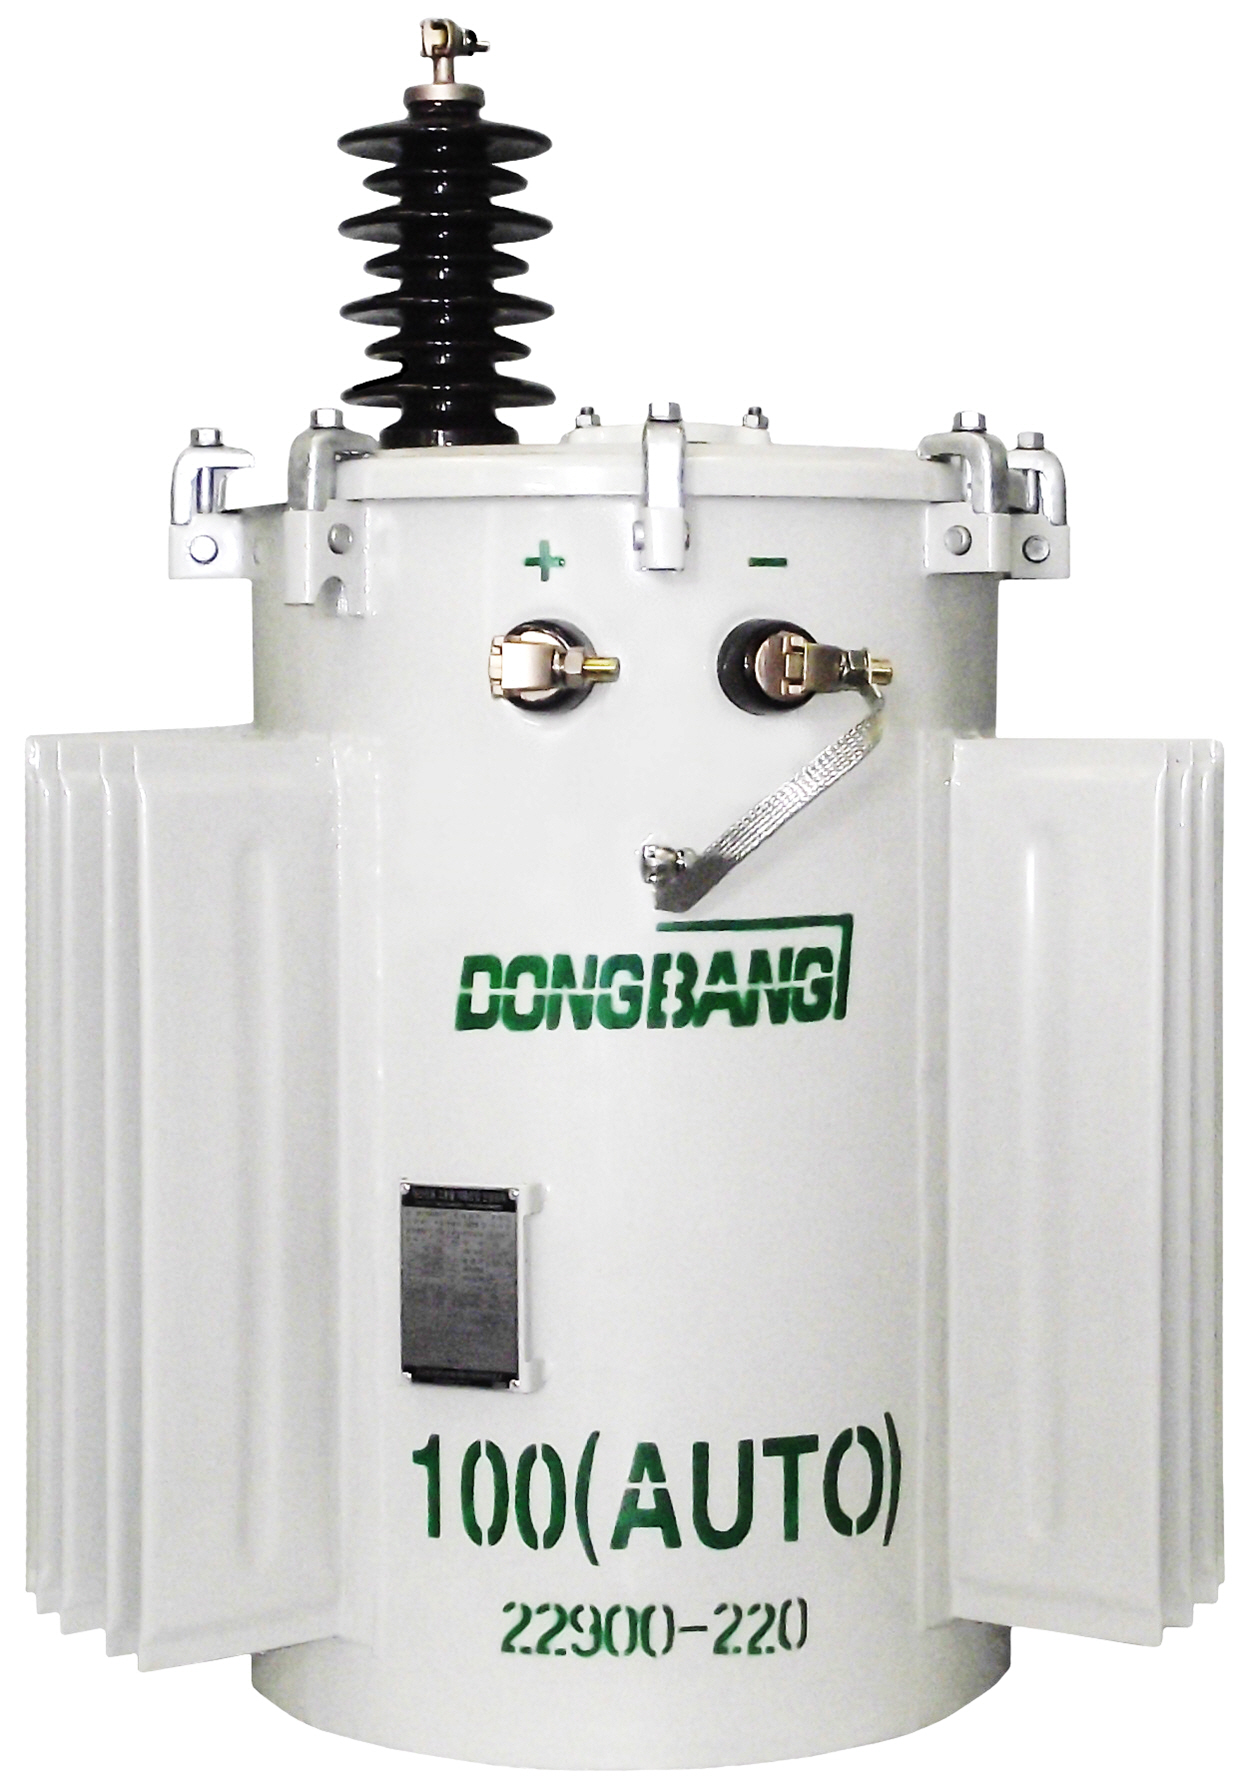 Auto Tap-changer Regulating Transformer